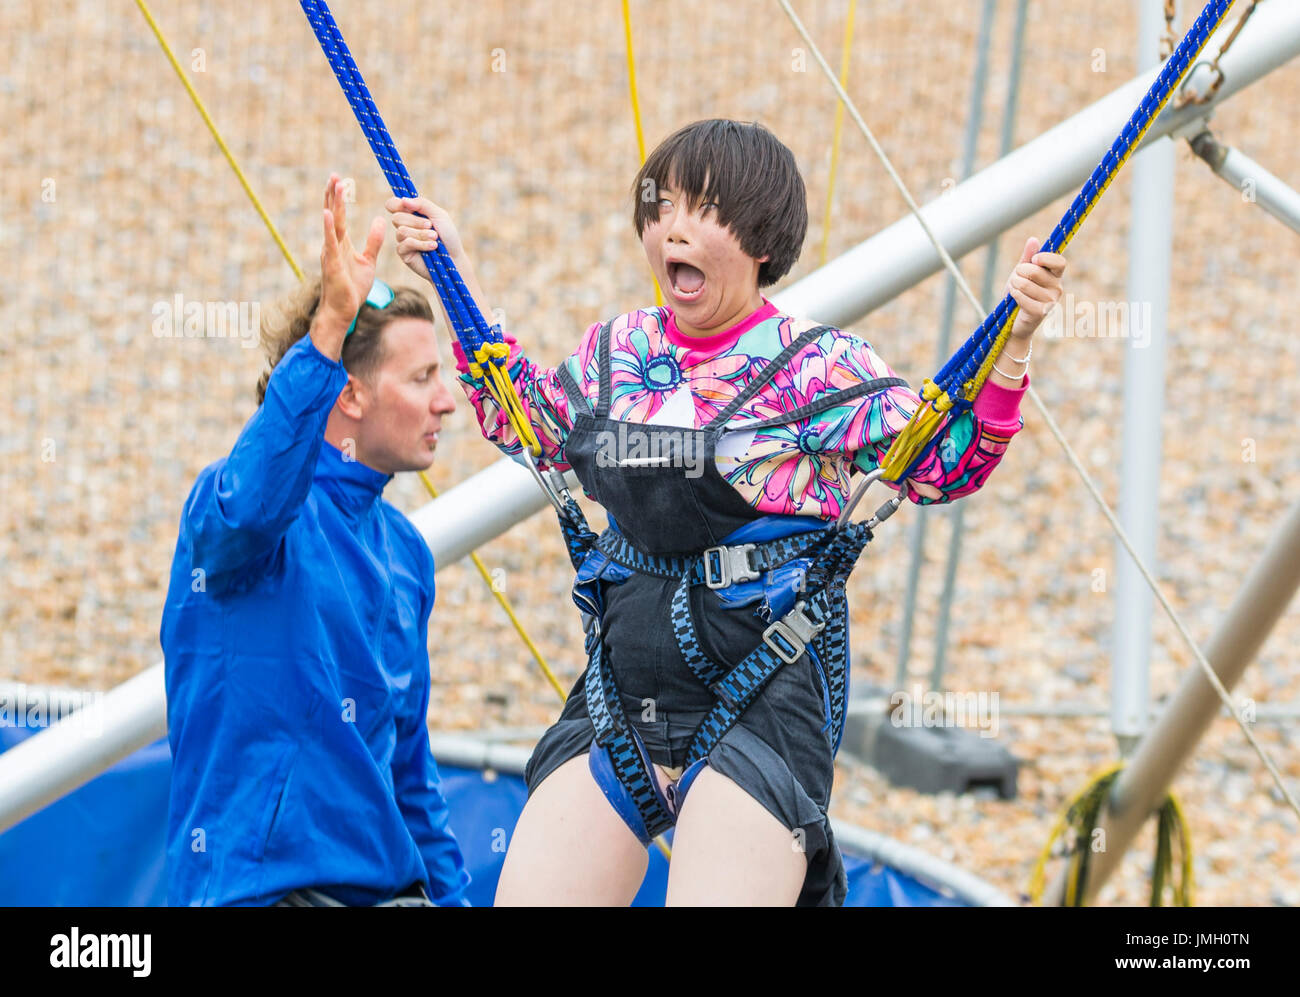 Young Japanese girl making a funny excited face as she enjoys herself on a Bungee Jump Trampoline. Bungee Jump Trampoline. - Stock Image